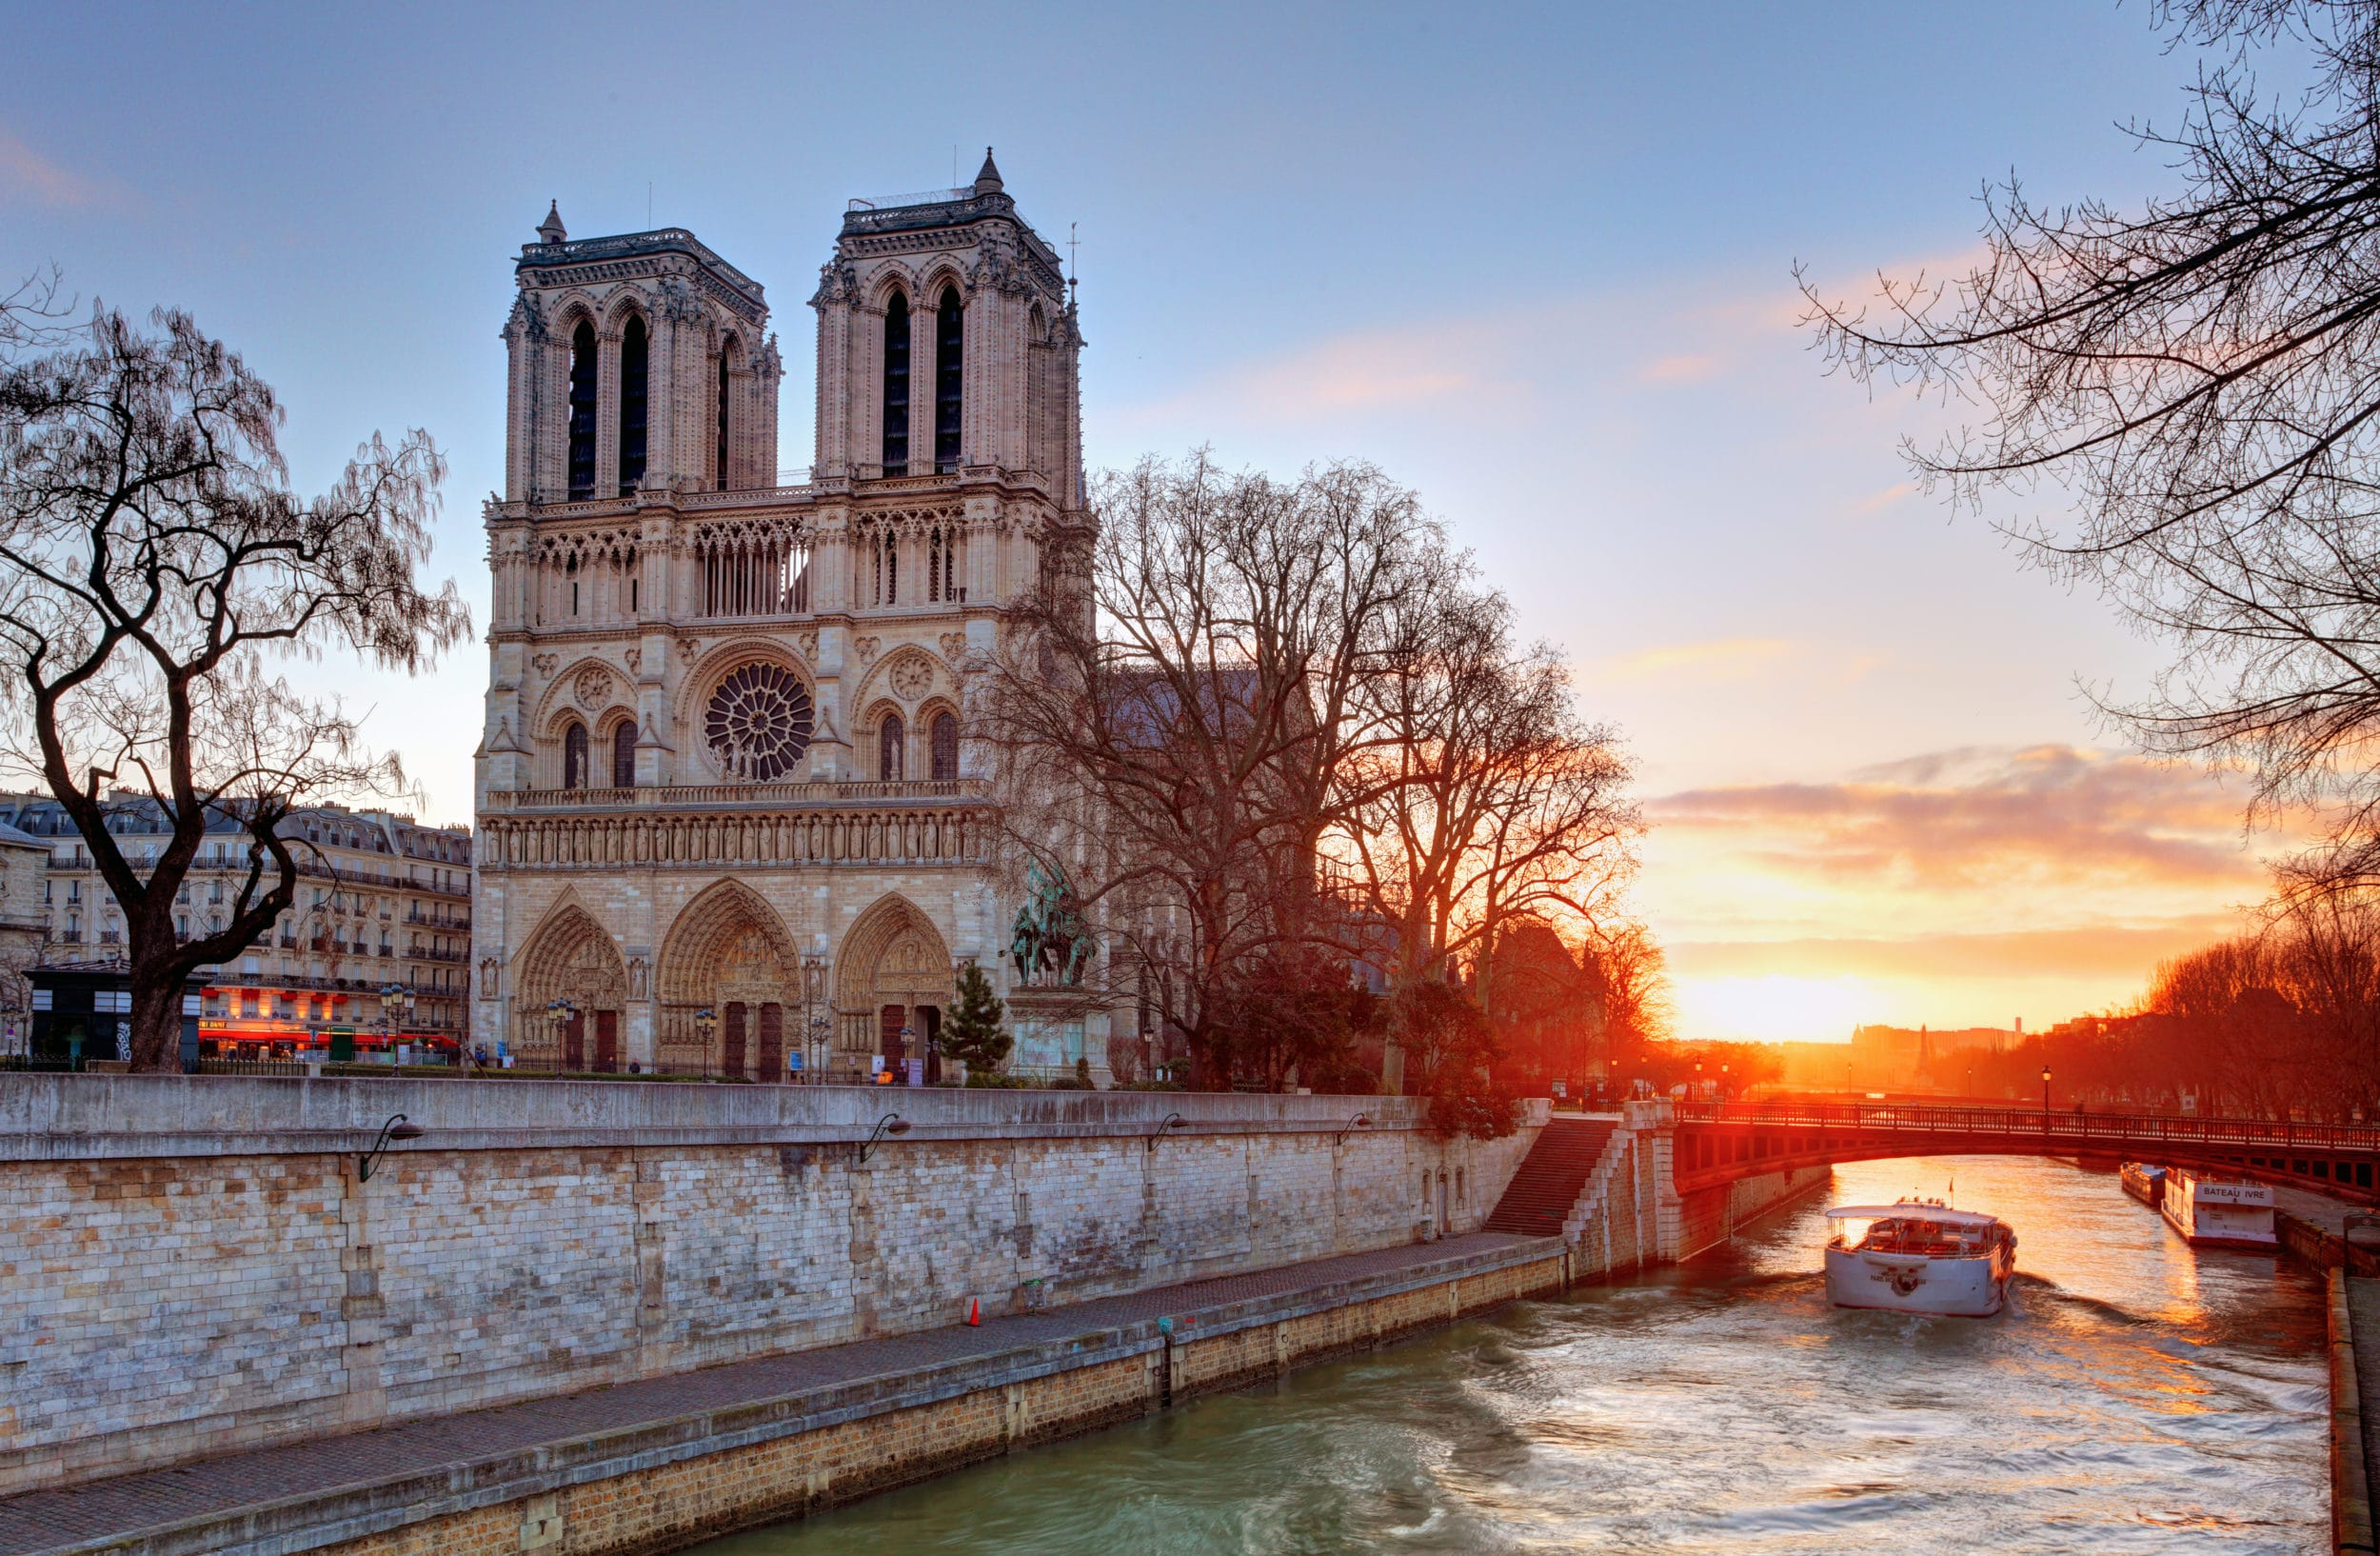 LVMH and Kering group donate 300 million euros for Notre Dame